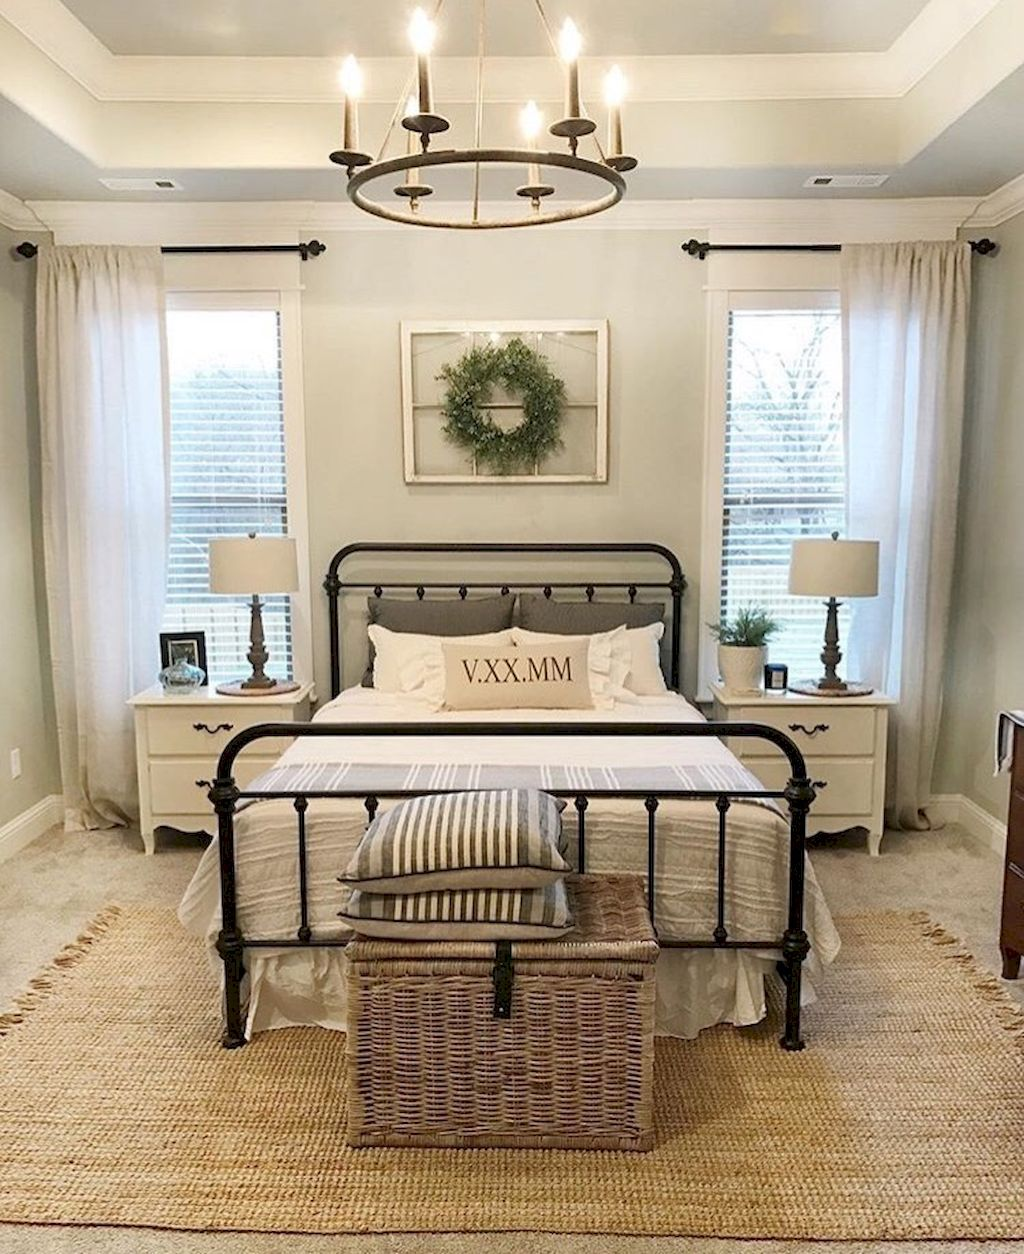 Awesome 85 Stunning Small Master Bedroom Ideas